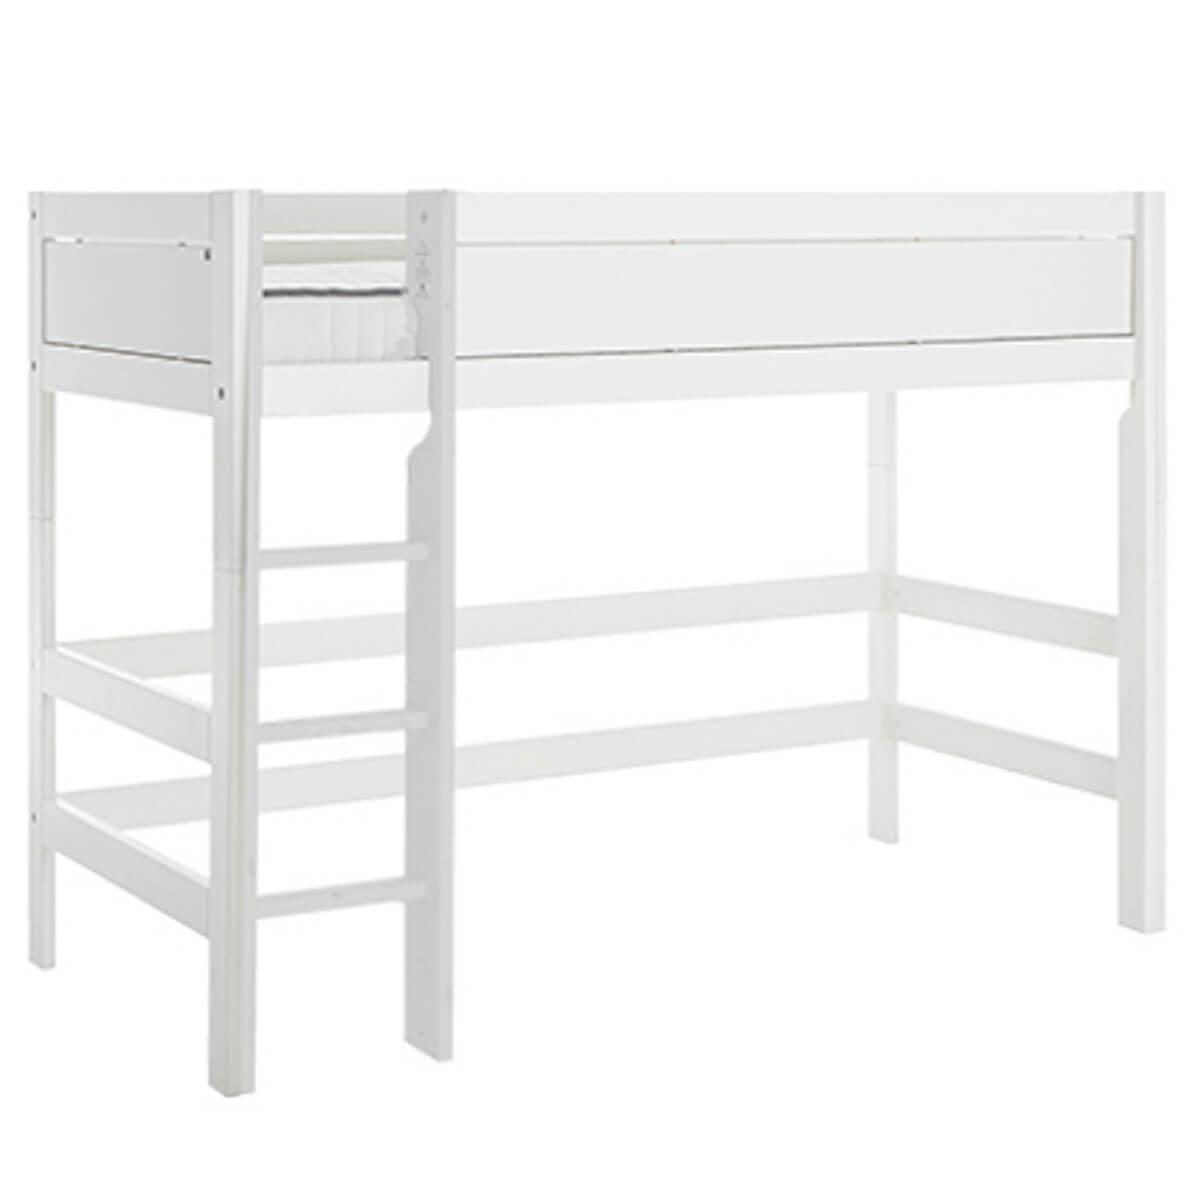 Cama semi alta 90x200cm escalera recta Lifetime blanco